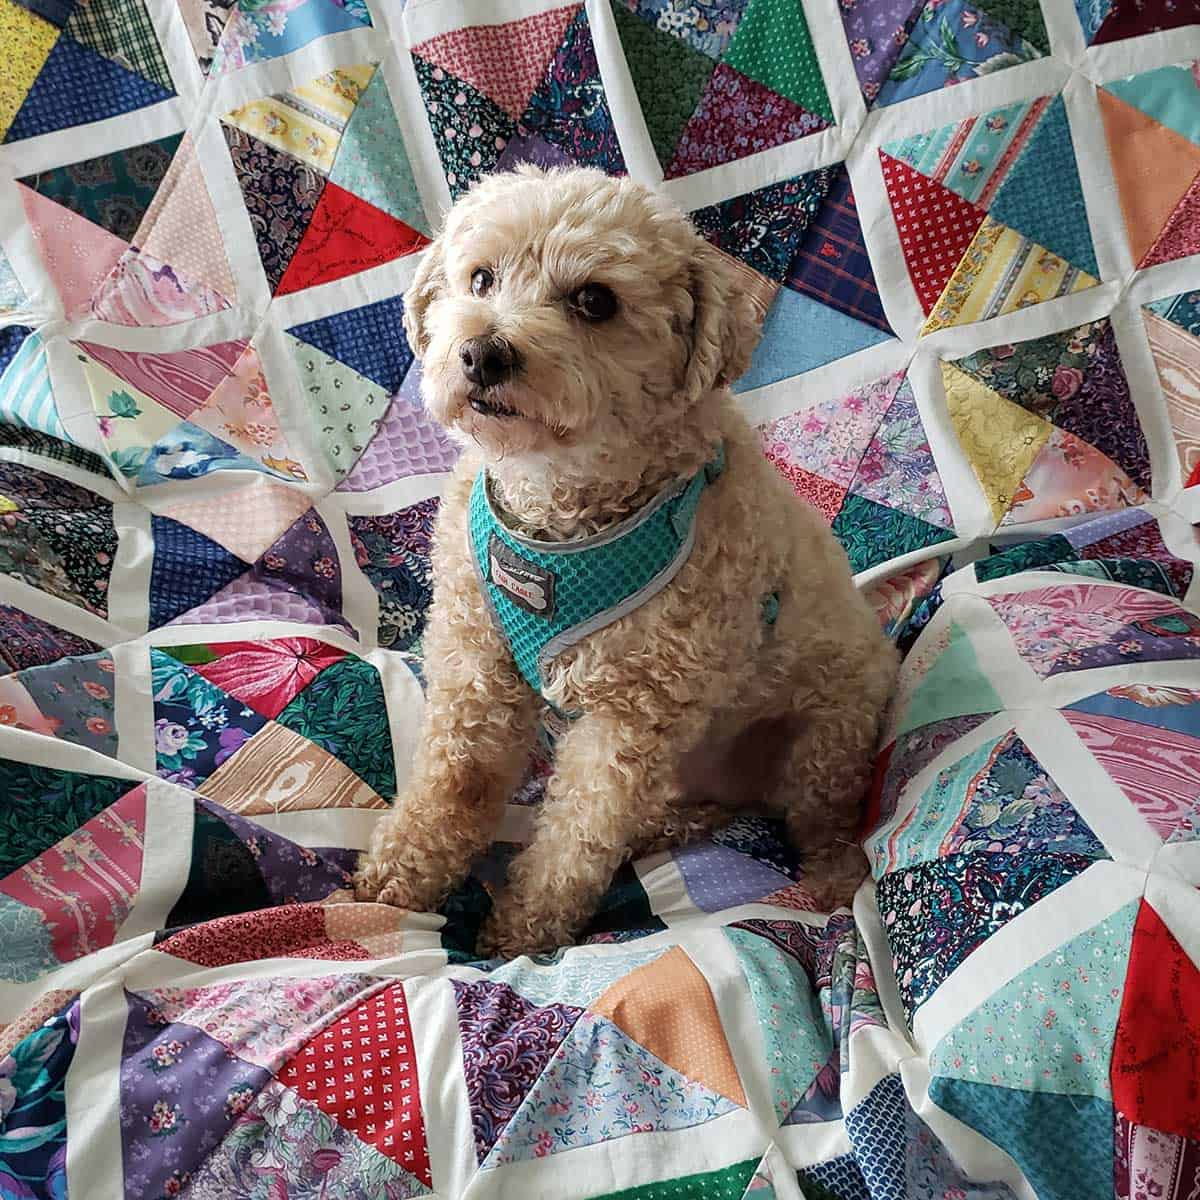 Mr. Mickey on the quilt